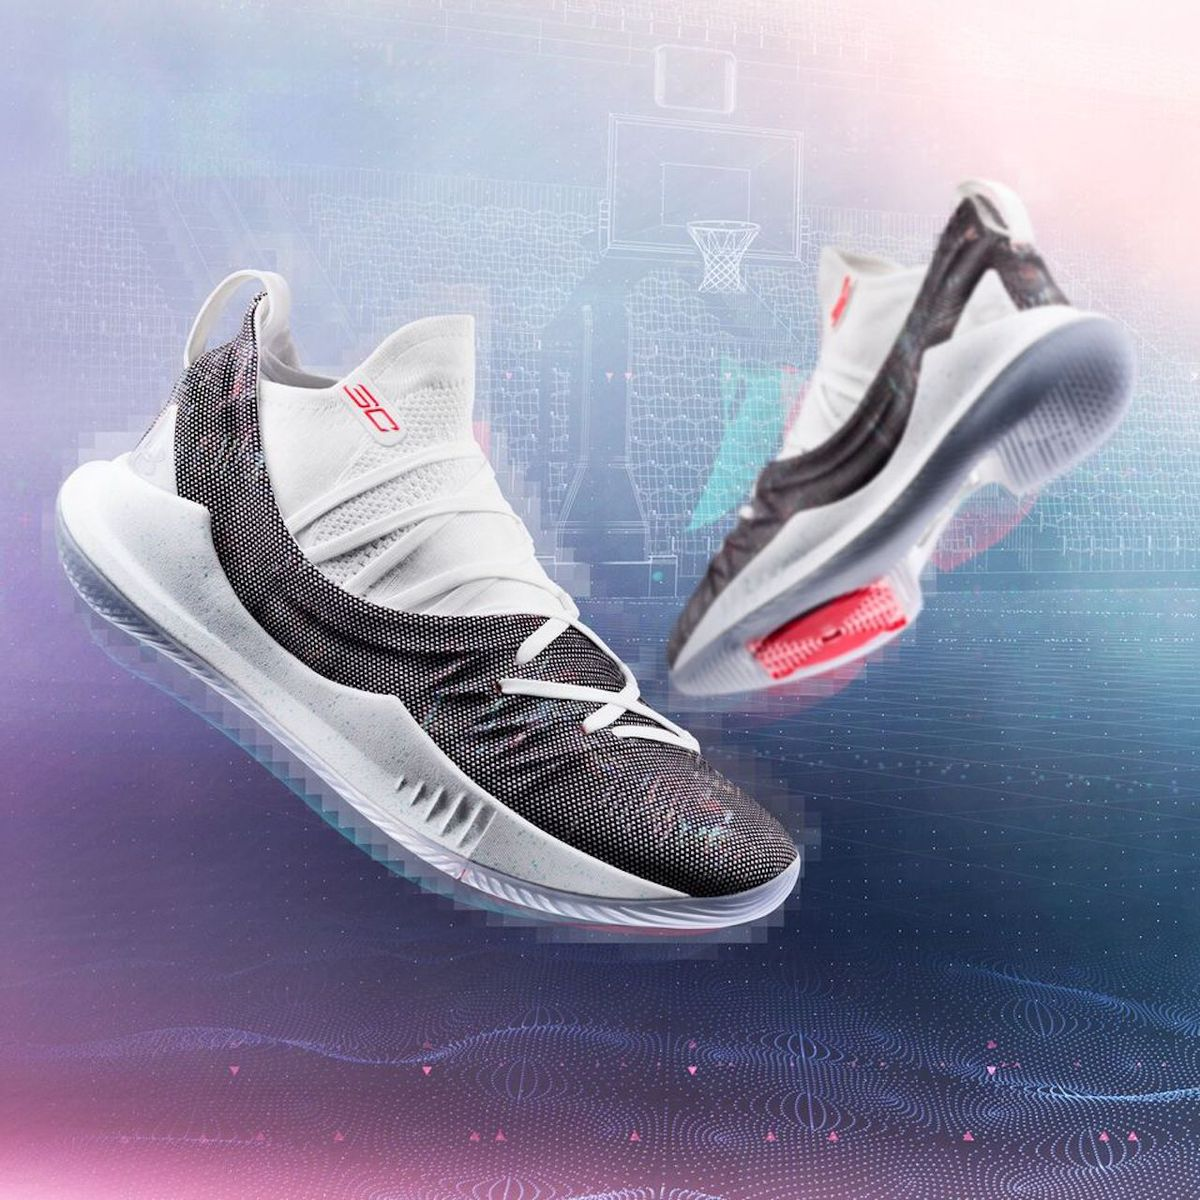 Under Armour releases Curry 5 colorway before Warriors-Rockets Game ... 9830bbf4b319